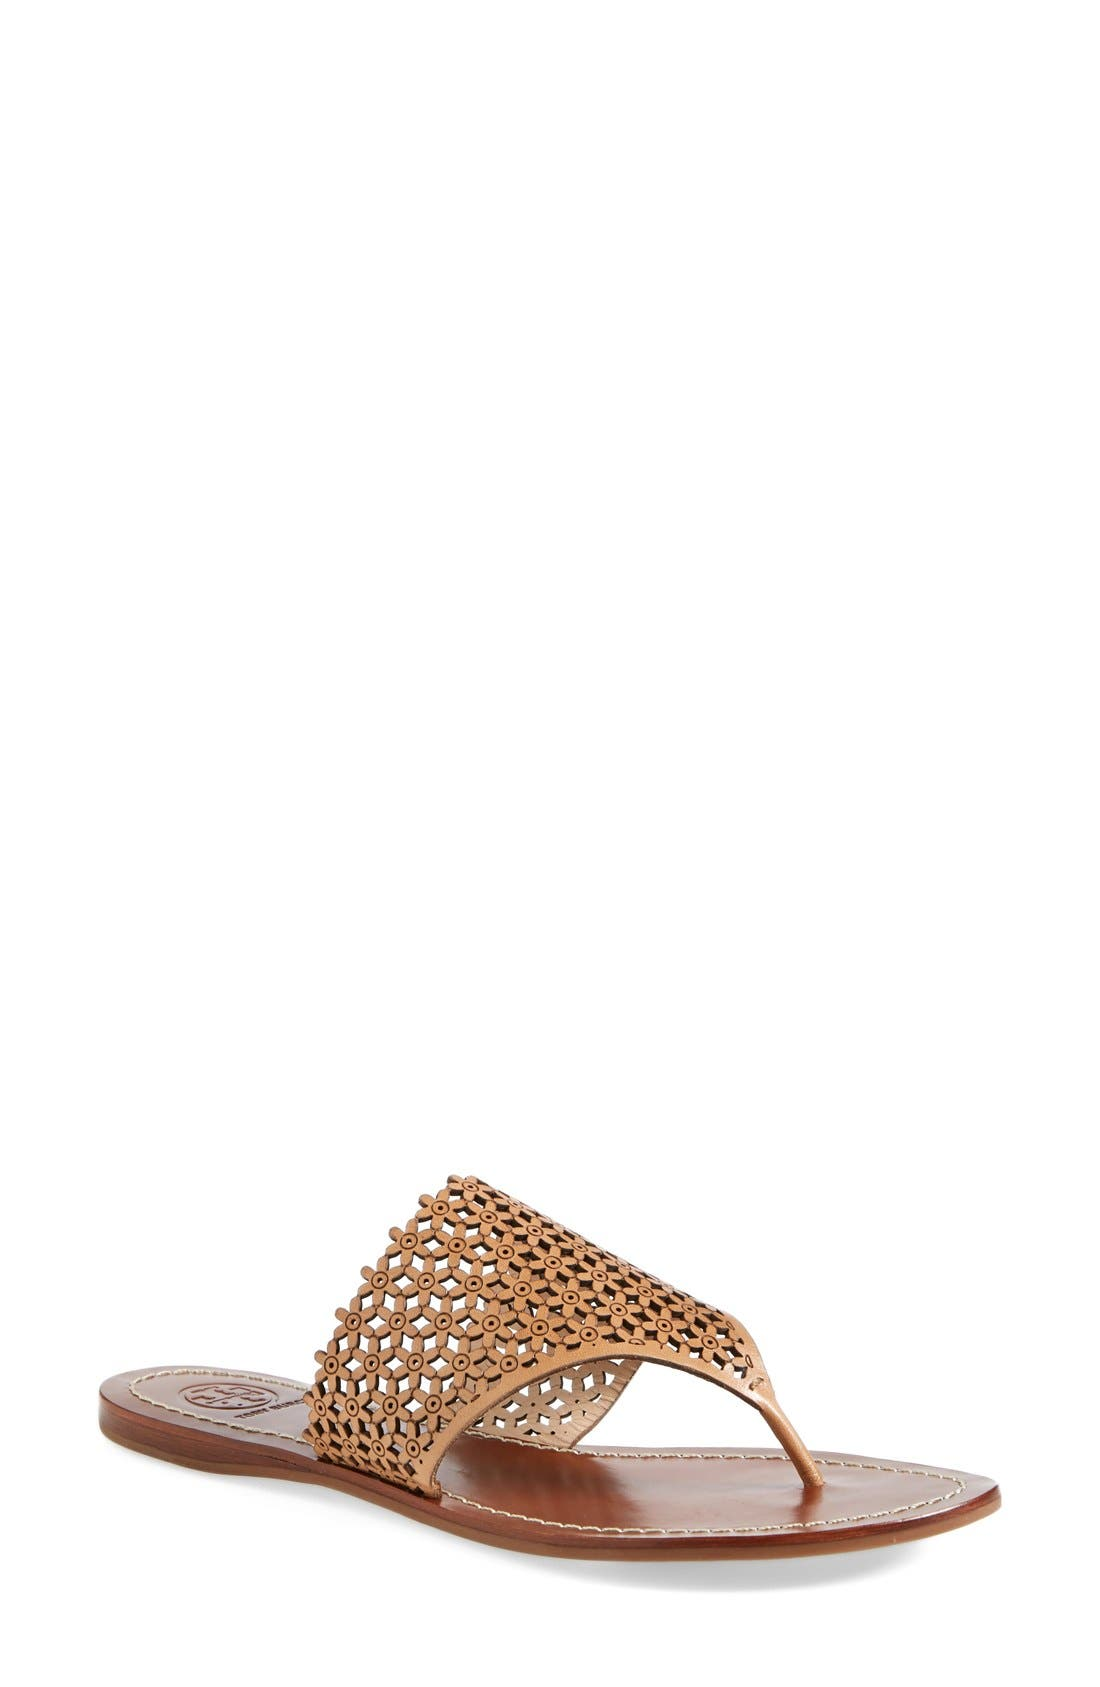 TORY BURCH 'Daisy' Perforated Sandal, Main, color, 671